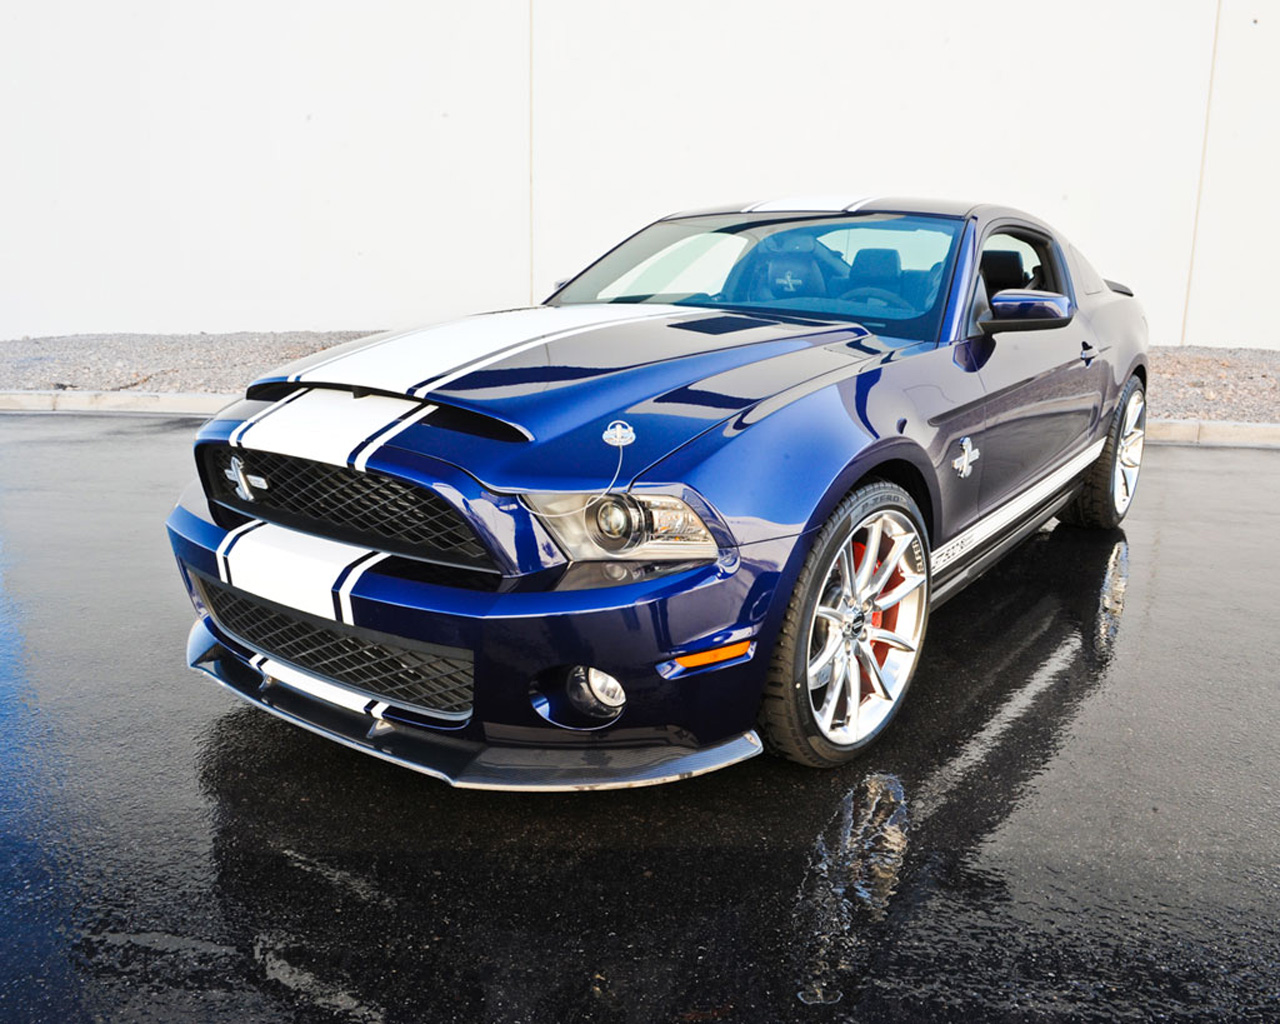 shelby gt500 super snake 800hp mustang on the way extravaganzi. Black Bedroom Furniture Sets. Home Design Ideas